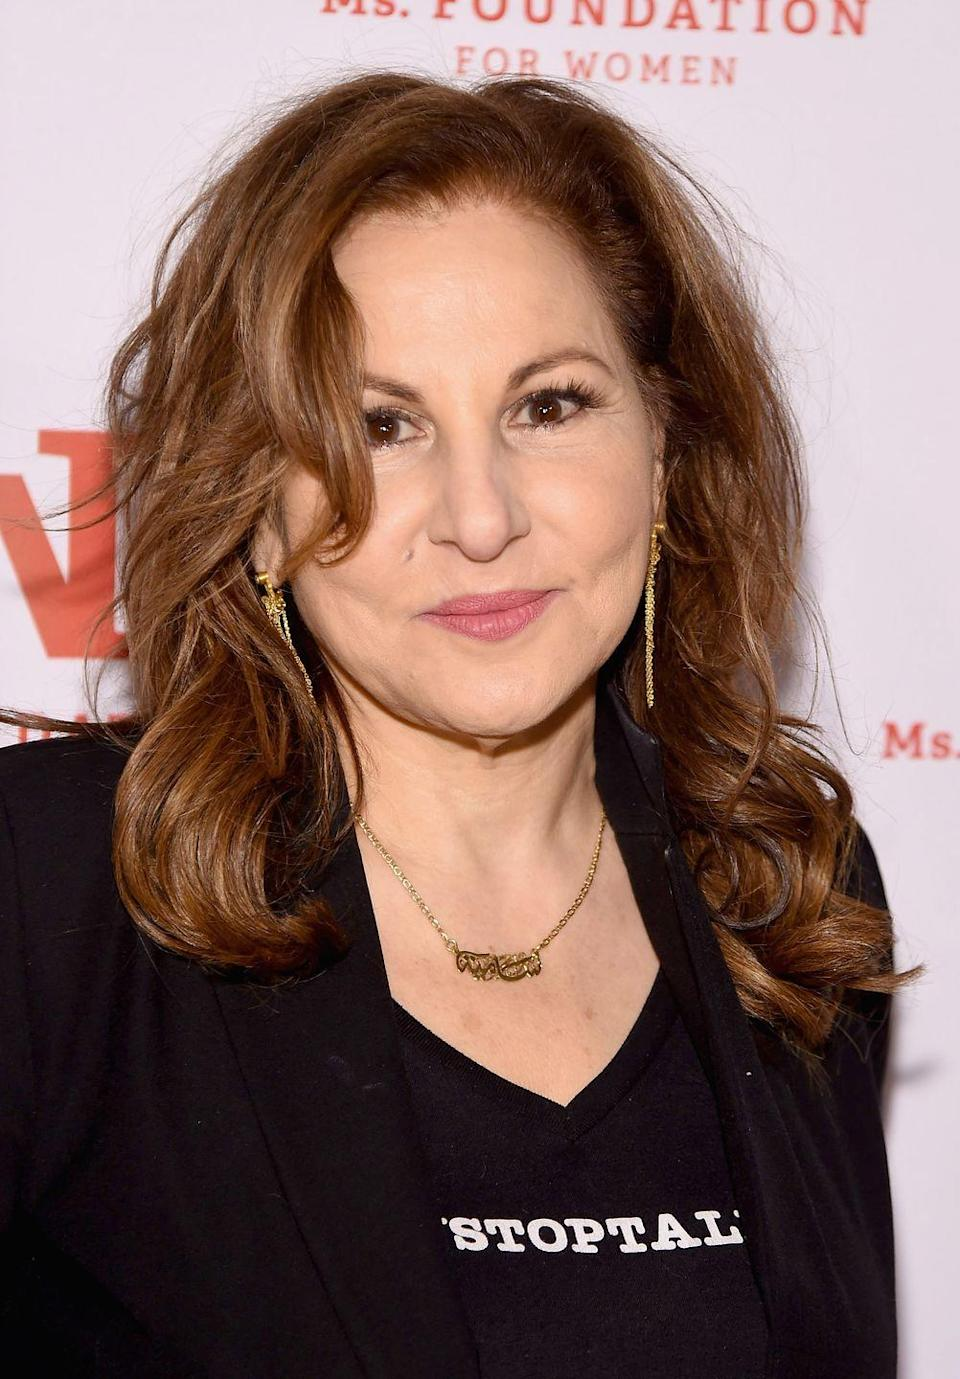 "<p>In the new millennium, Kathy began taking on roles behind the camera, as well. In 2012, she worked on the film <em>These Girls. </em>Four years later, she served as a consulting producer for the TV series <em>The Jamz</em>. Her latest roles to date include acting as Wendy Keegan in <em><a href=""https://www.amazon.com/Fundraiser/dp/B00BS4N946/ref=sr_1_2?keywords=veep&qid=1560191486&s=gateway&sr=8-2&tag=syn-yahoo-20&ascsubtag=%5Bartid%7C2140.g.34318089%5Bsrc%7Cyahoo-us"" rel=""nofollow noopener"" target=""_blank"" data-ylk=""slk:Veep"" class=""link rapid-noclick-resp"">Veep </a></em>and Judge Gayle Eno in <em><a href=""https://www.amazon.com/Inauguration/dp/B075DHY17H/ref=sr_1_2?keywords=The+Good+Fight&qid=1560191507&s=gateway&sr=8-2&tag=syn-yahoo-20&ascsubtag=%5Bartid%7C2140.g.34318089%5Bsrc%7Cyahoo-us"" rel=""nofollow noopener"" target=""_blank"" data-ylk=""slk:The Good Fight"" class=""link rapid-noclick-resp"">The Good Fight</a></em>. In 1998, she married singer and actor Dan Finnerty. </p>"